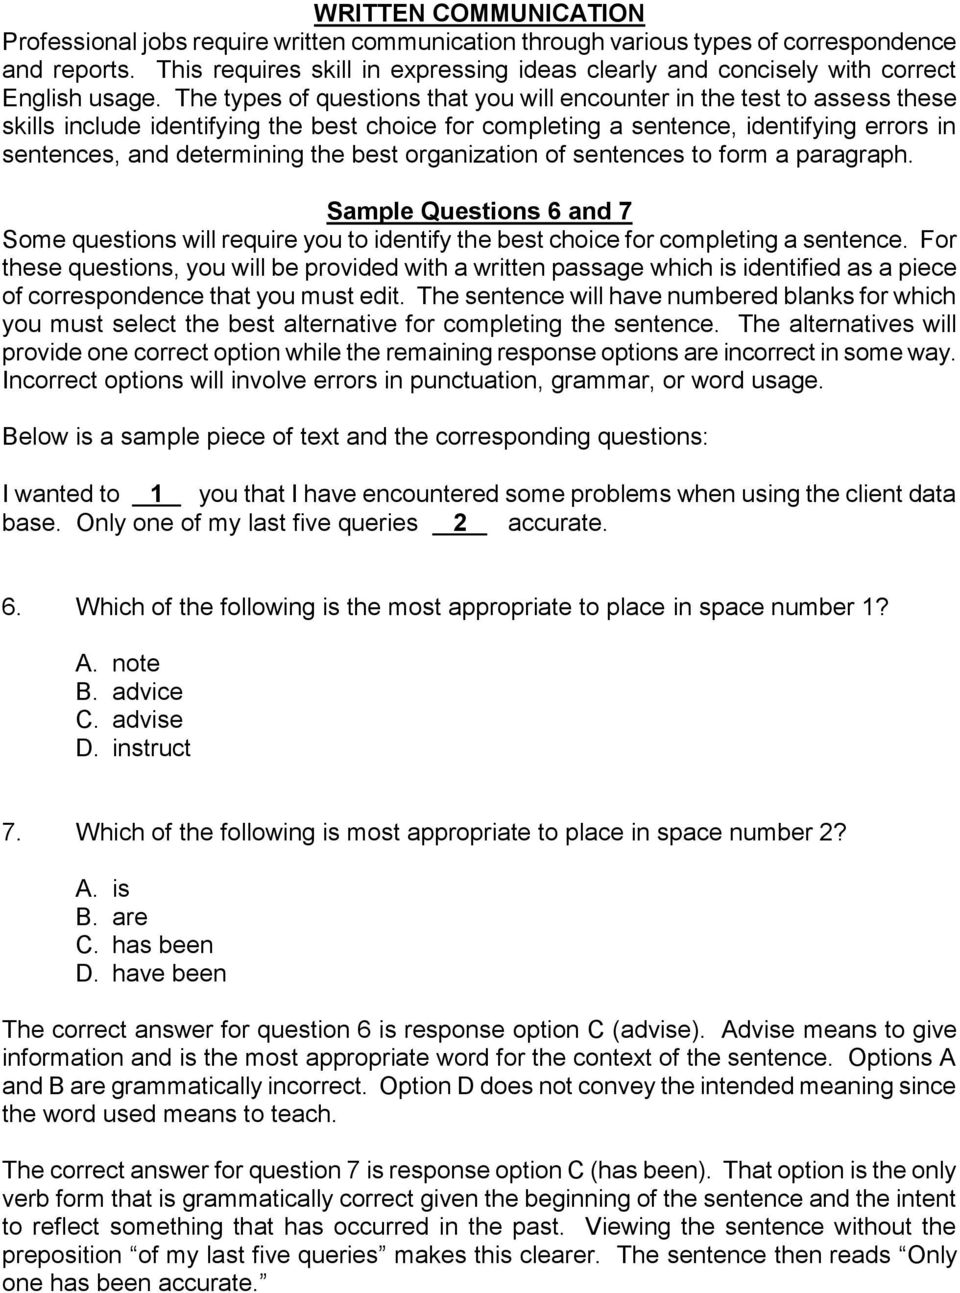 sample questions for series 8100 professional level exam ple pdf rh docplayer net Examples Study Guide Social Studies Study Guide